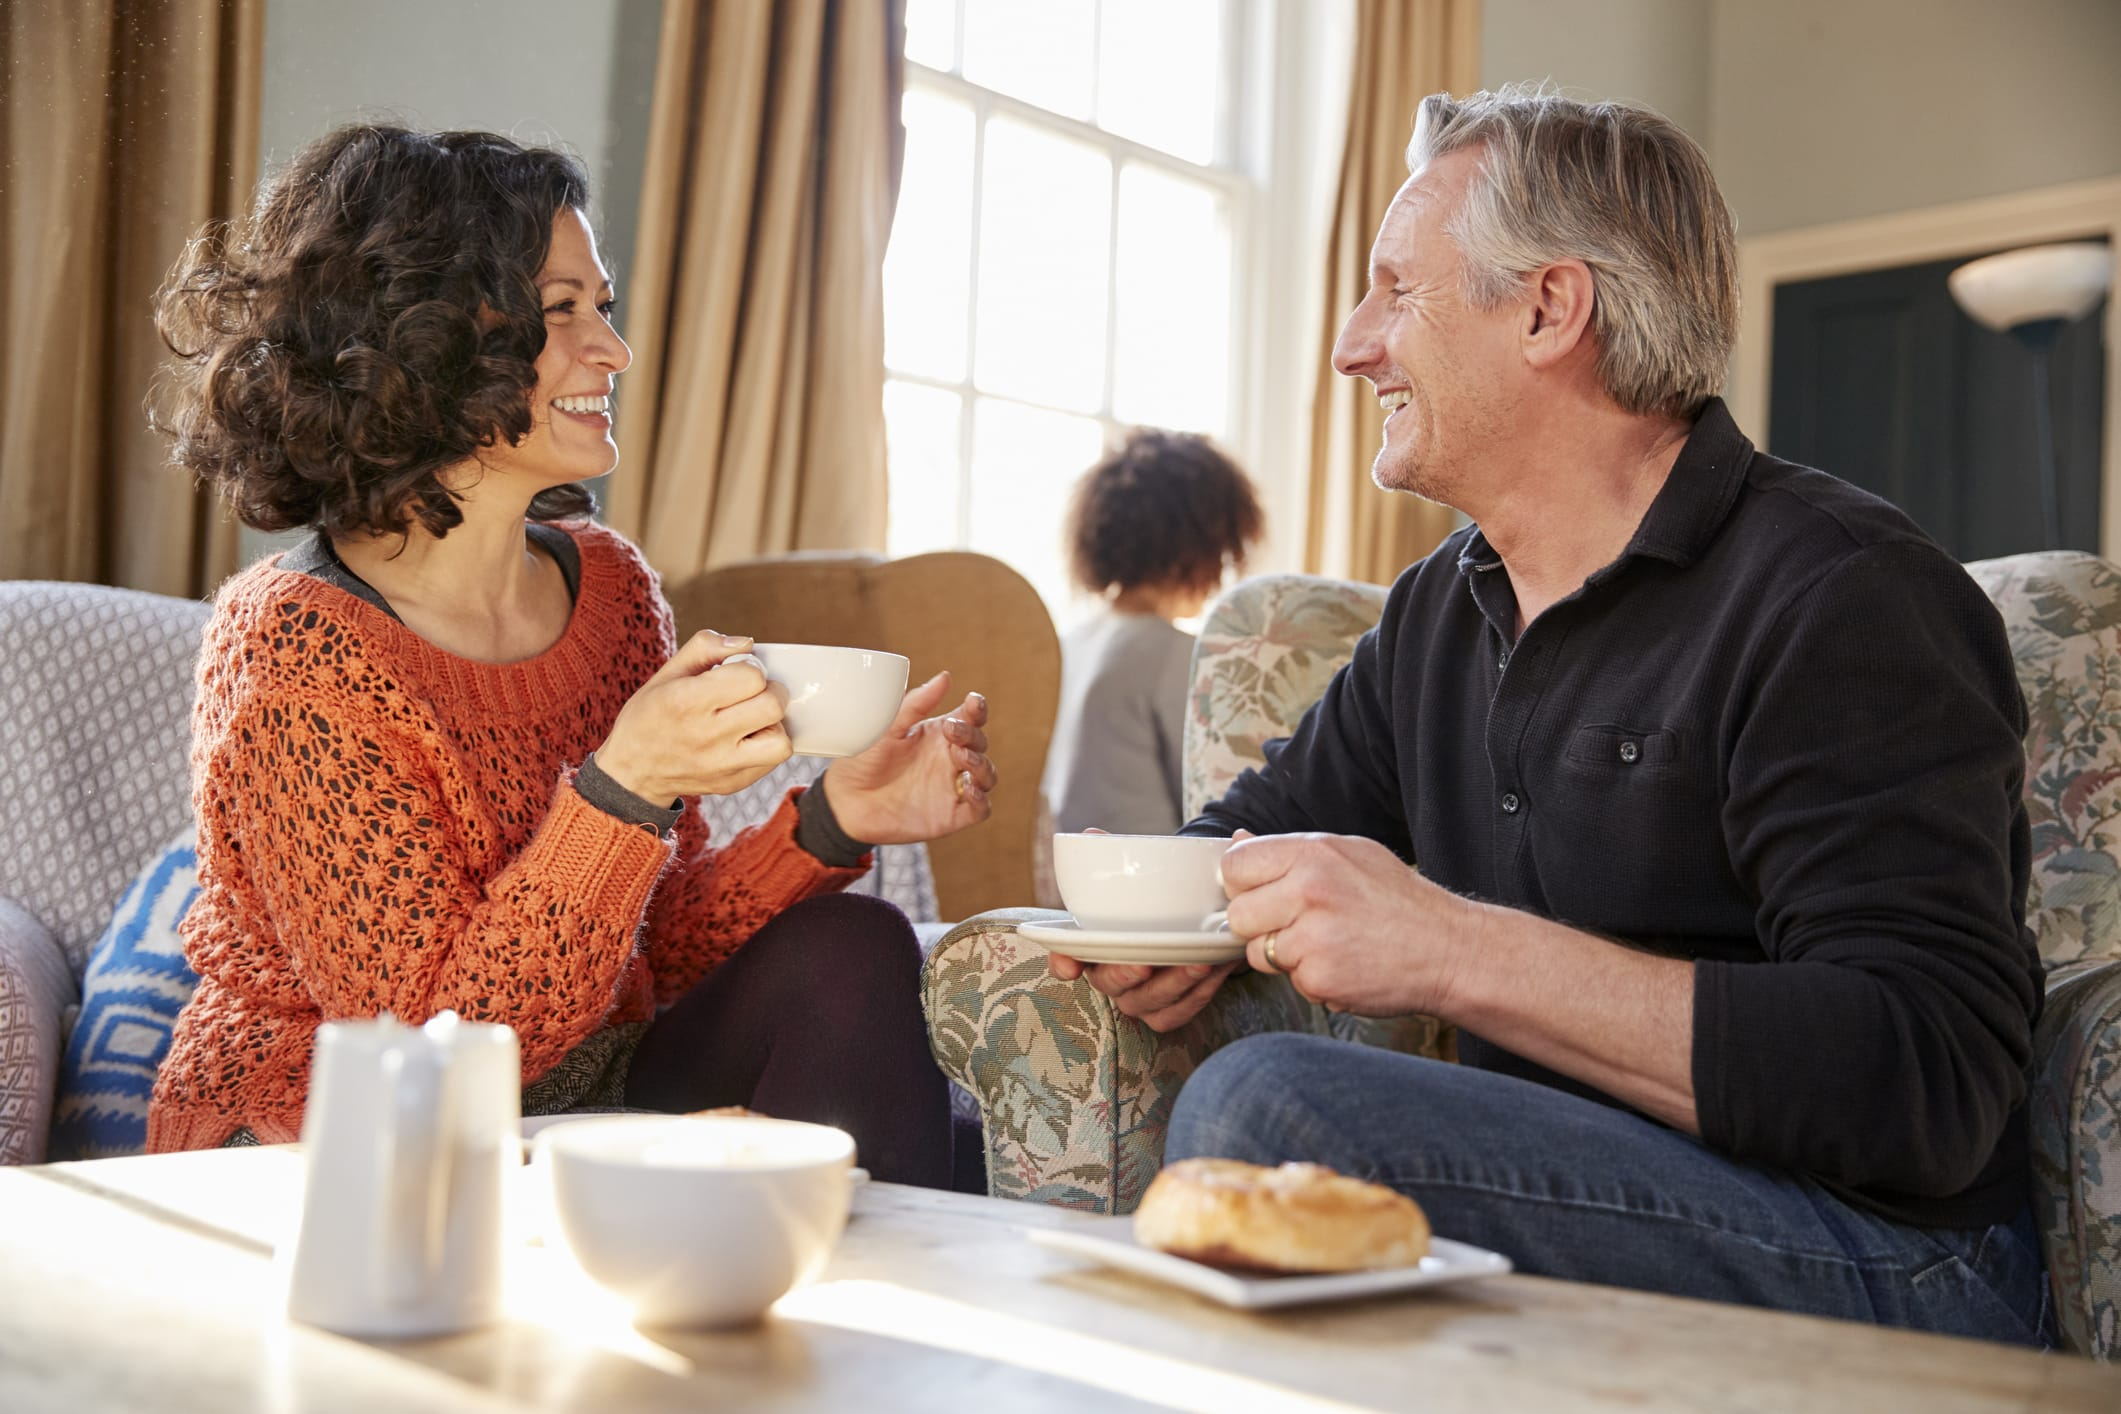 improve communication with marriage encounter dialogue resources